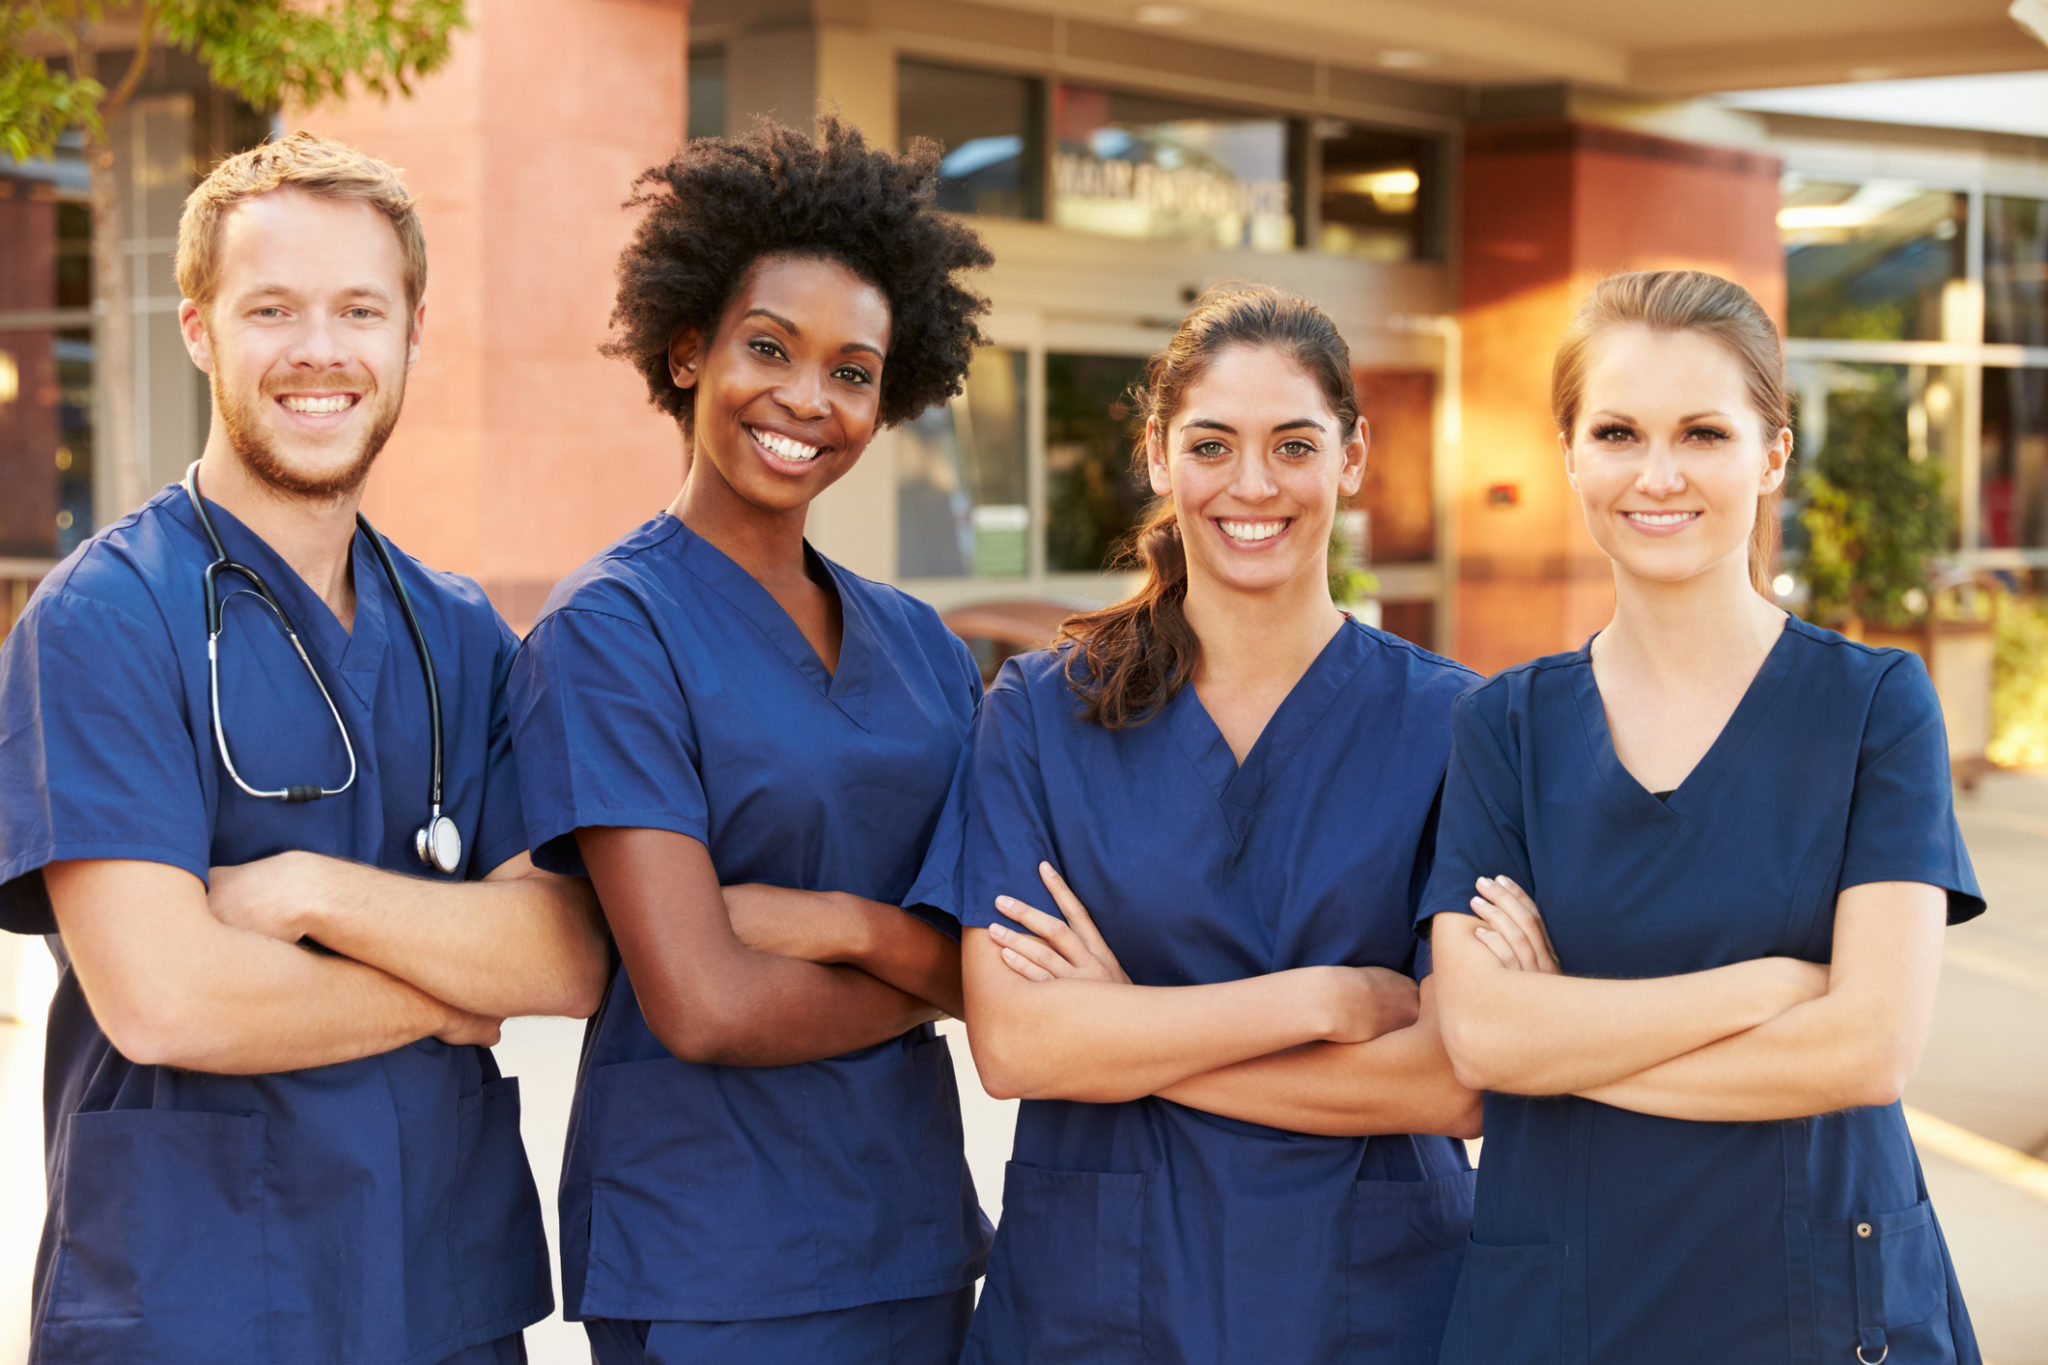 Medical Assistant programs in California